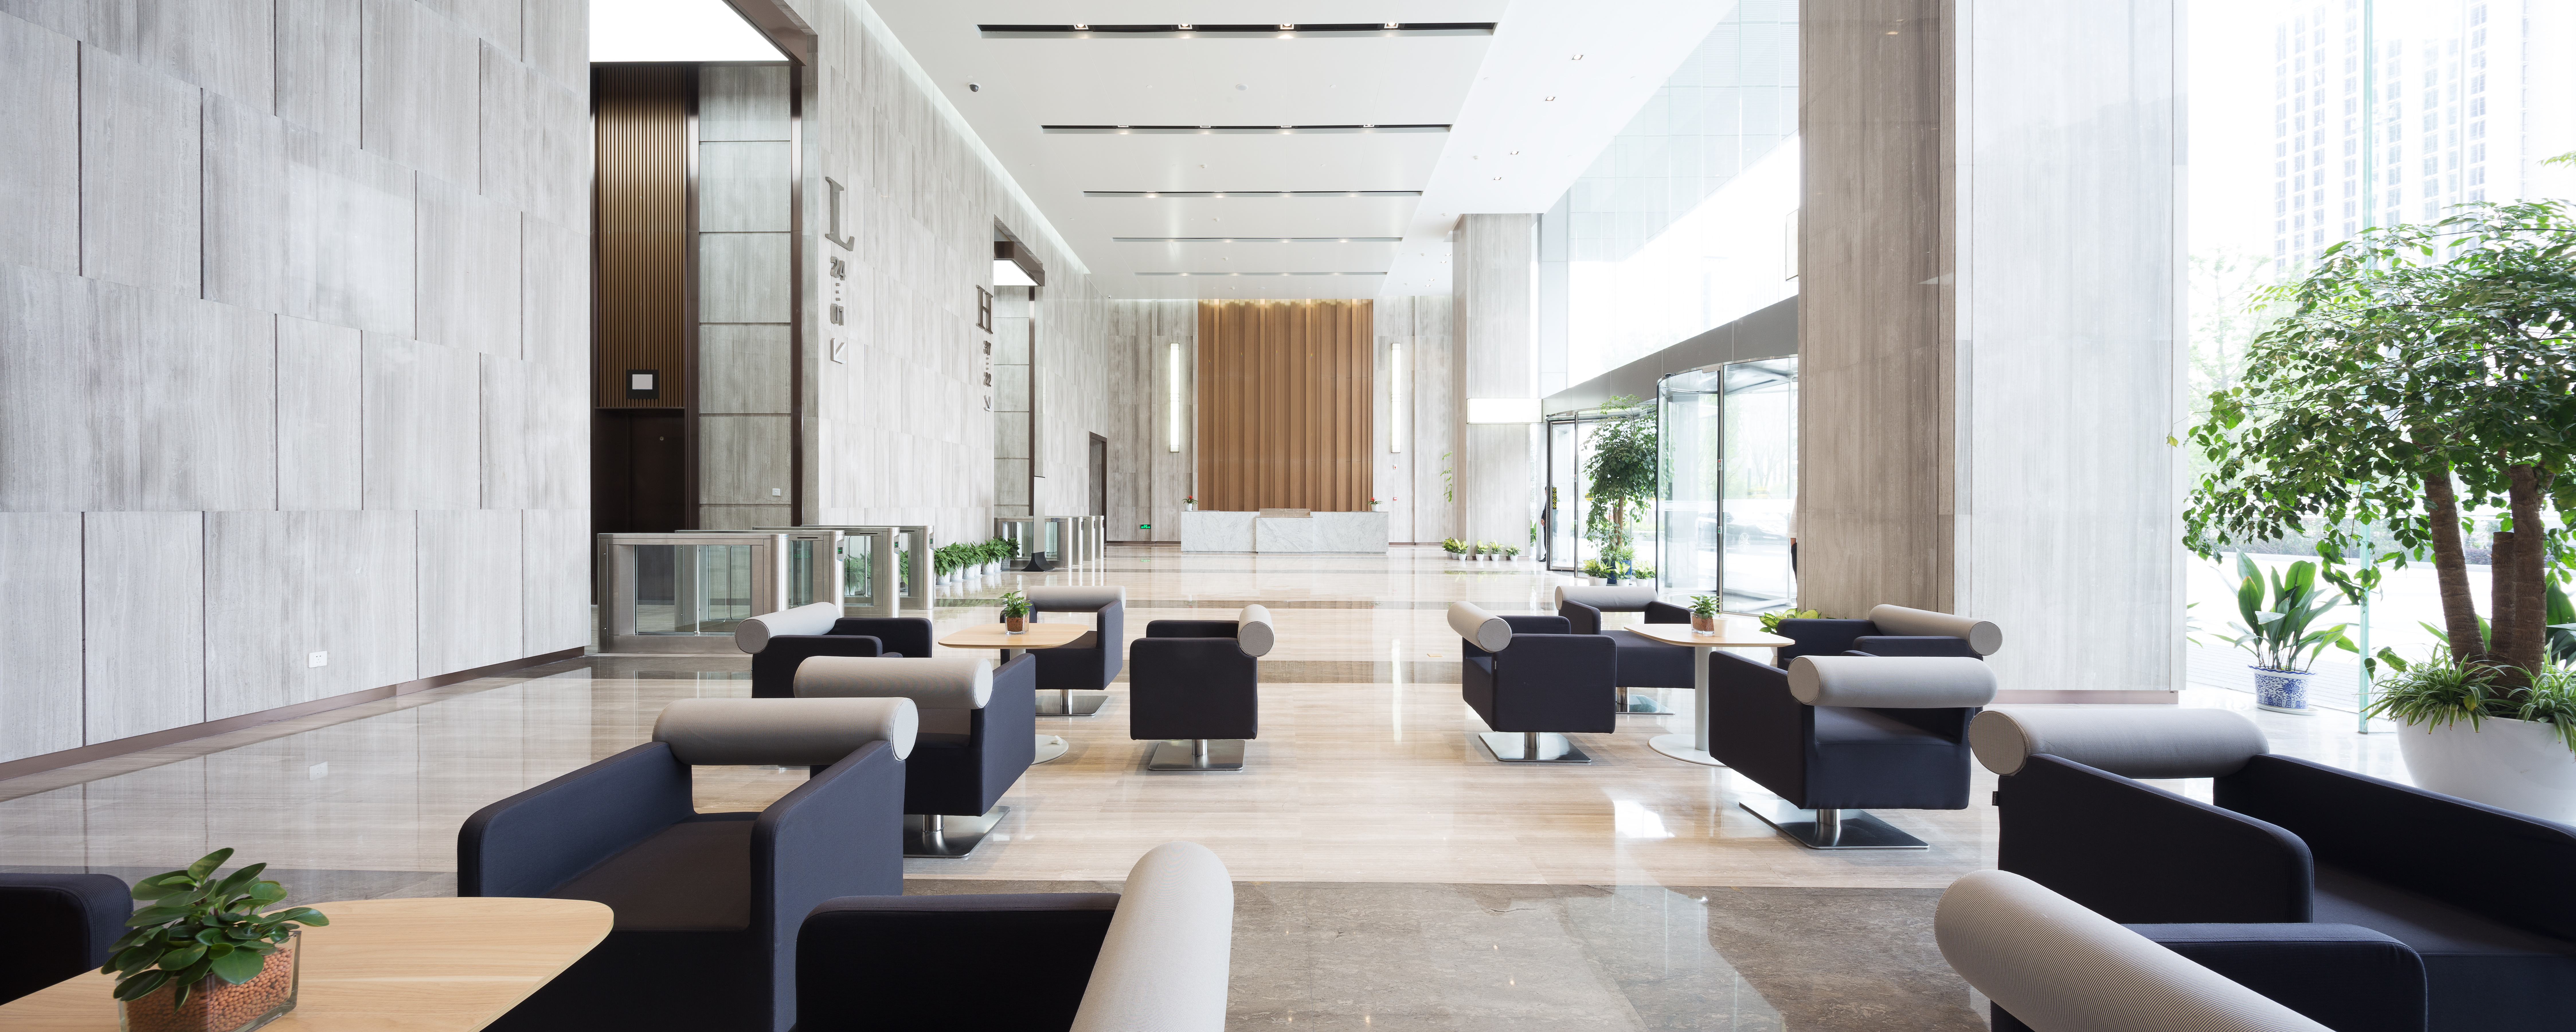 Clean and modern lobby of an office building